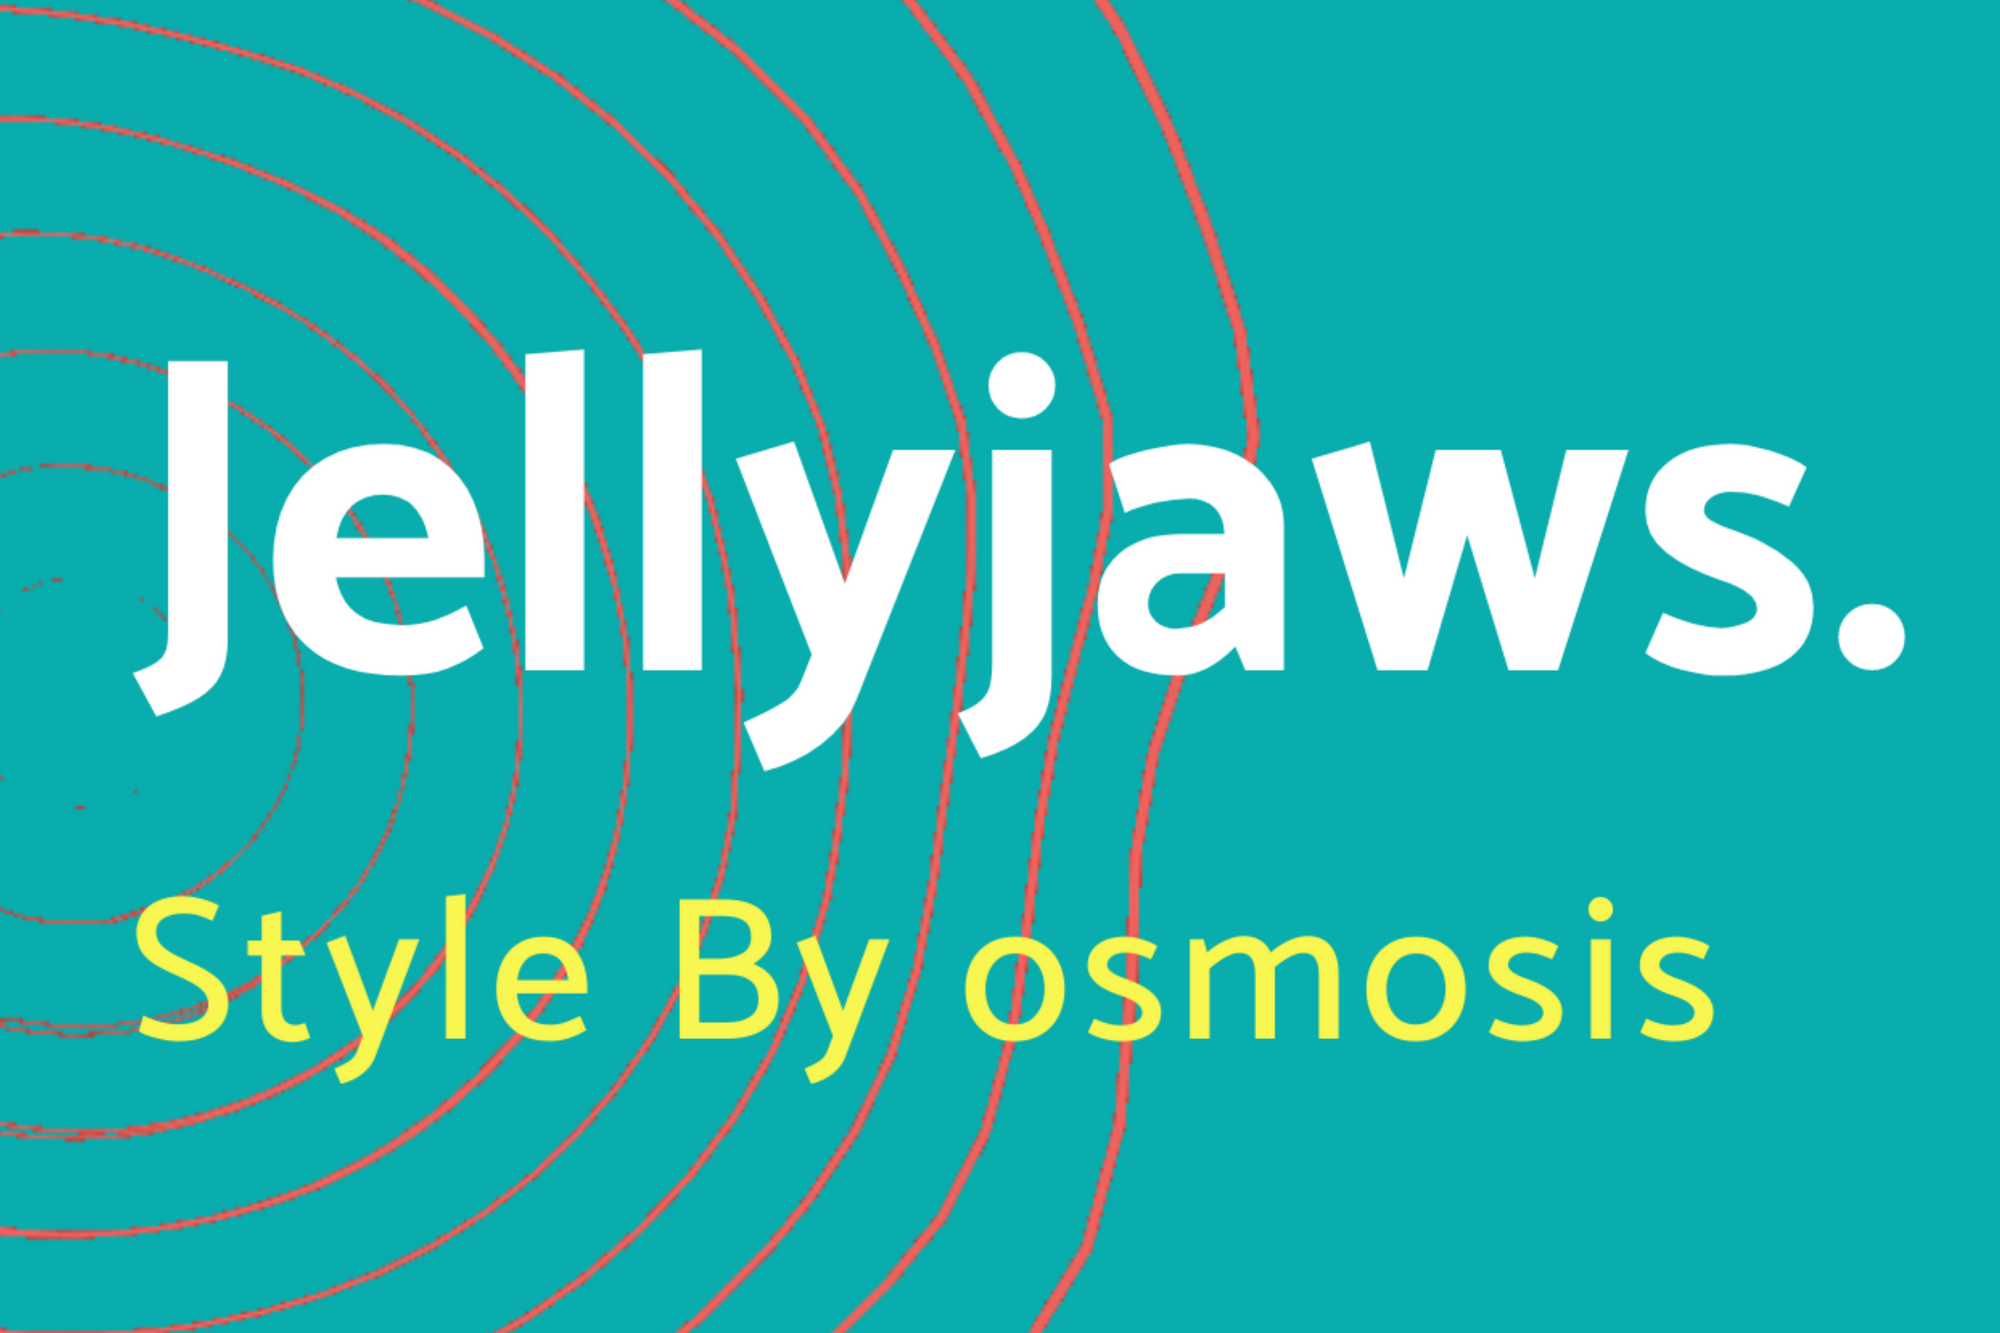 Jellyjaws. Store